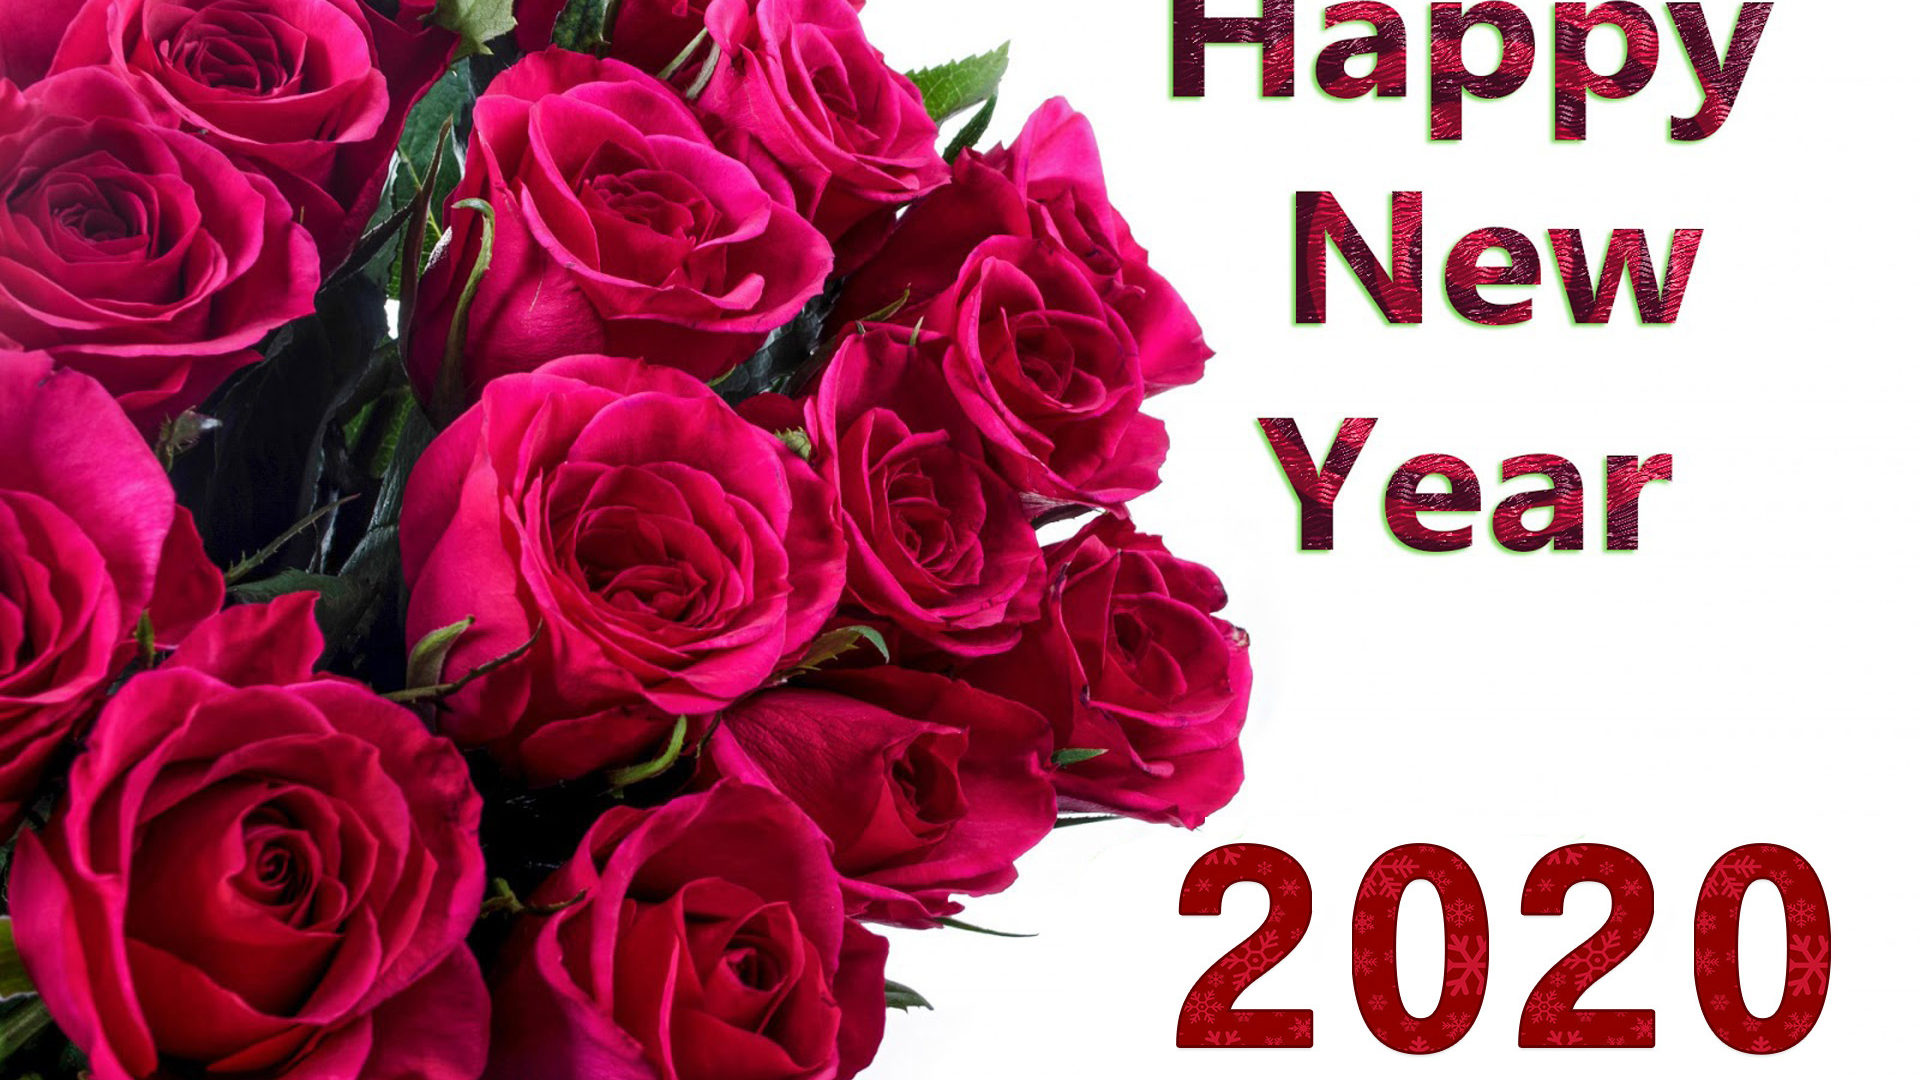 Happy New Year 2020 Red Roses Wallpapers Hd High Quality 1920x1200 1920x1080